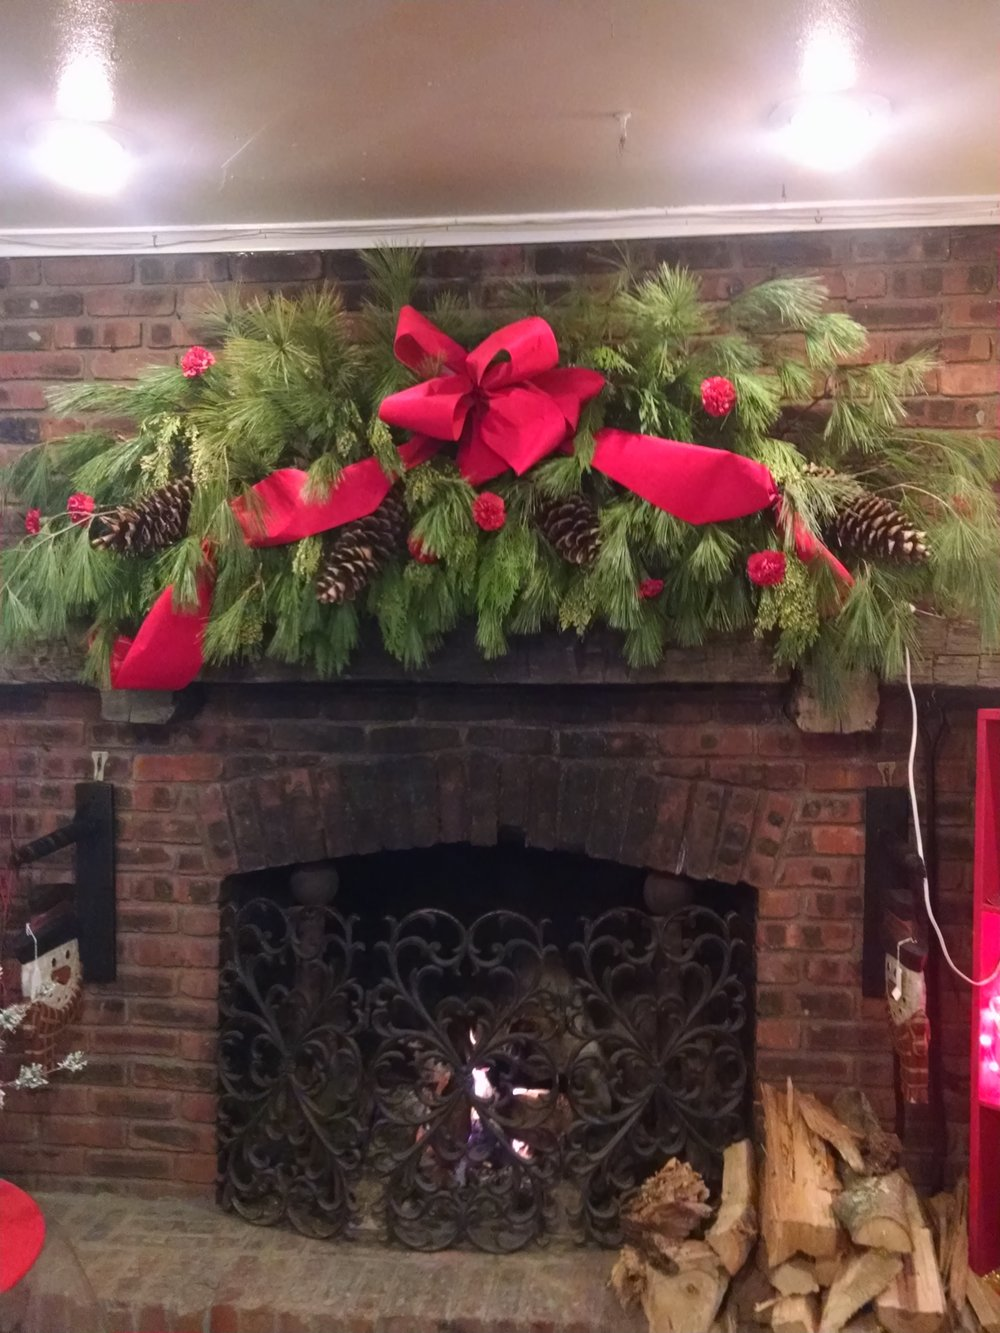 Fireplace Christmas Garland